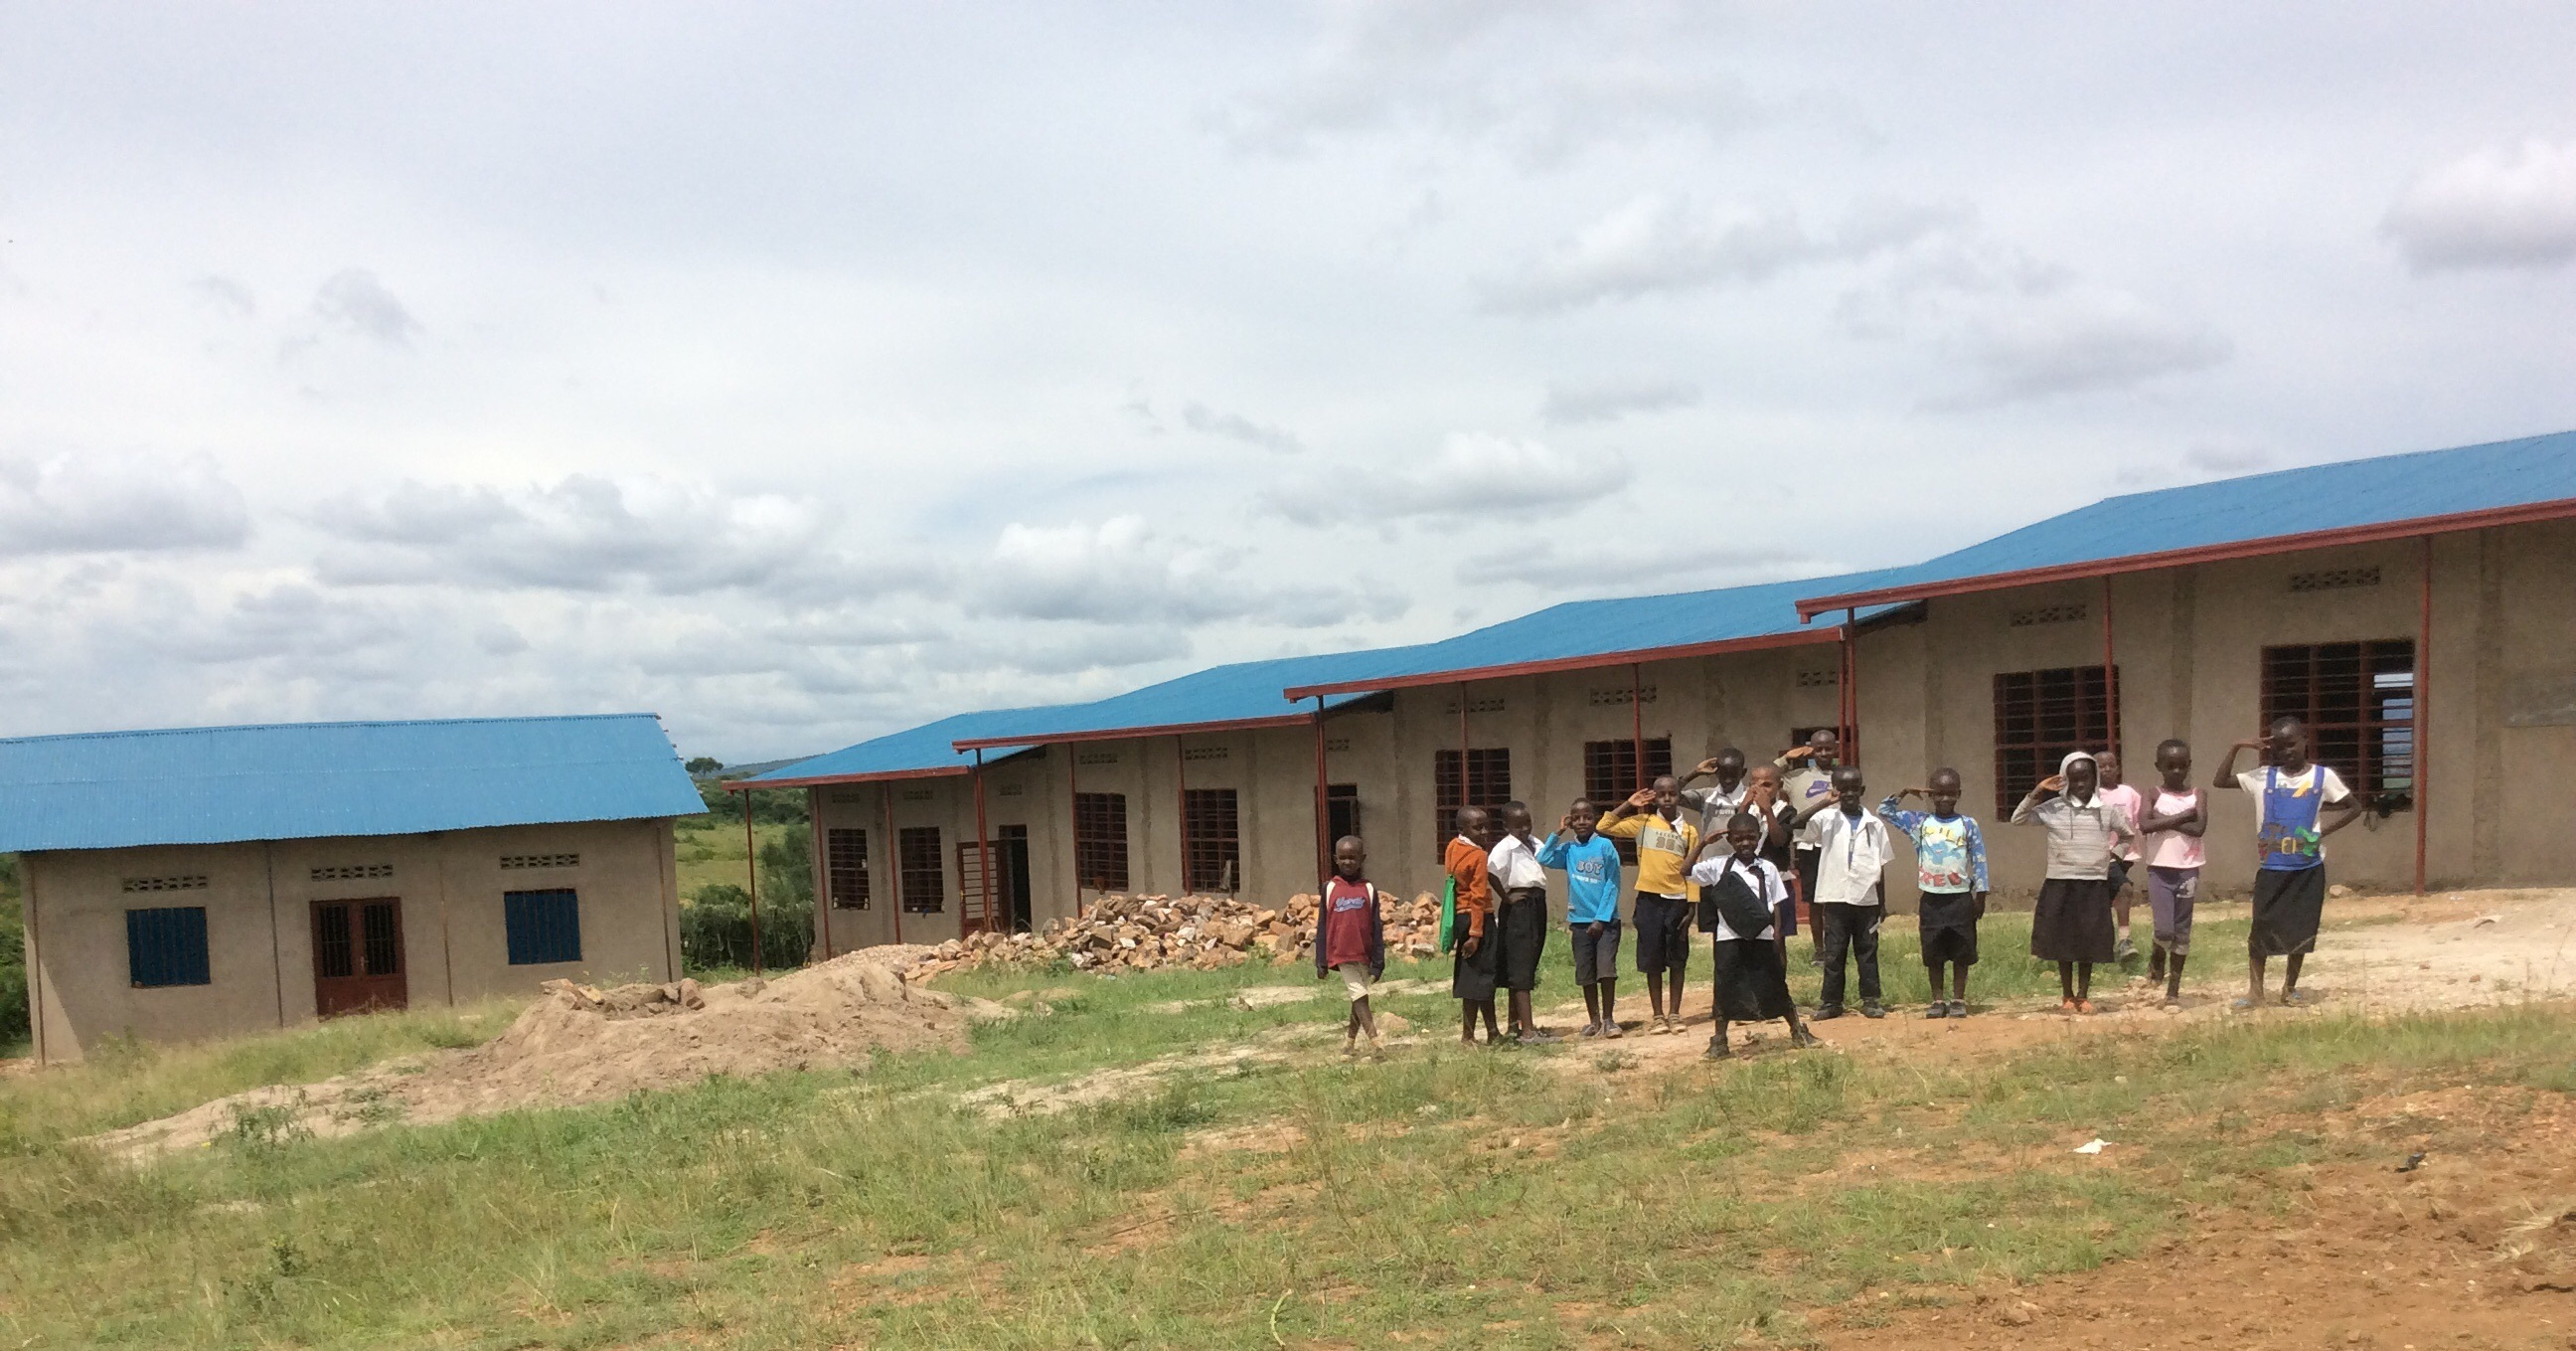 Matimba School Is Competed: Kindergarten And Elementary Classes Are In Session